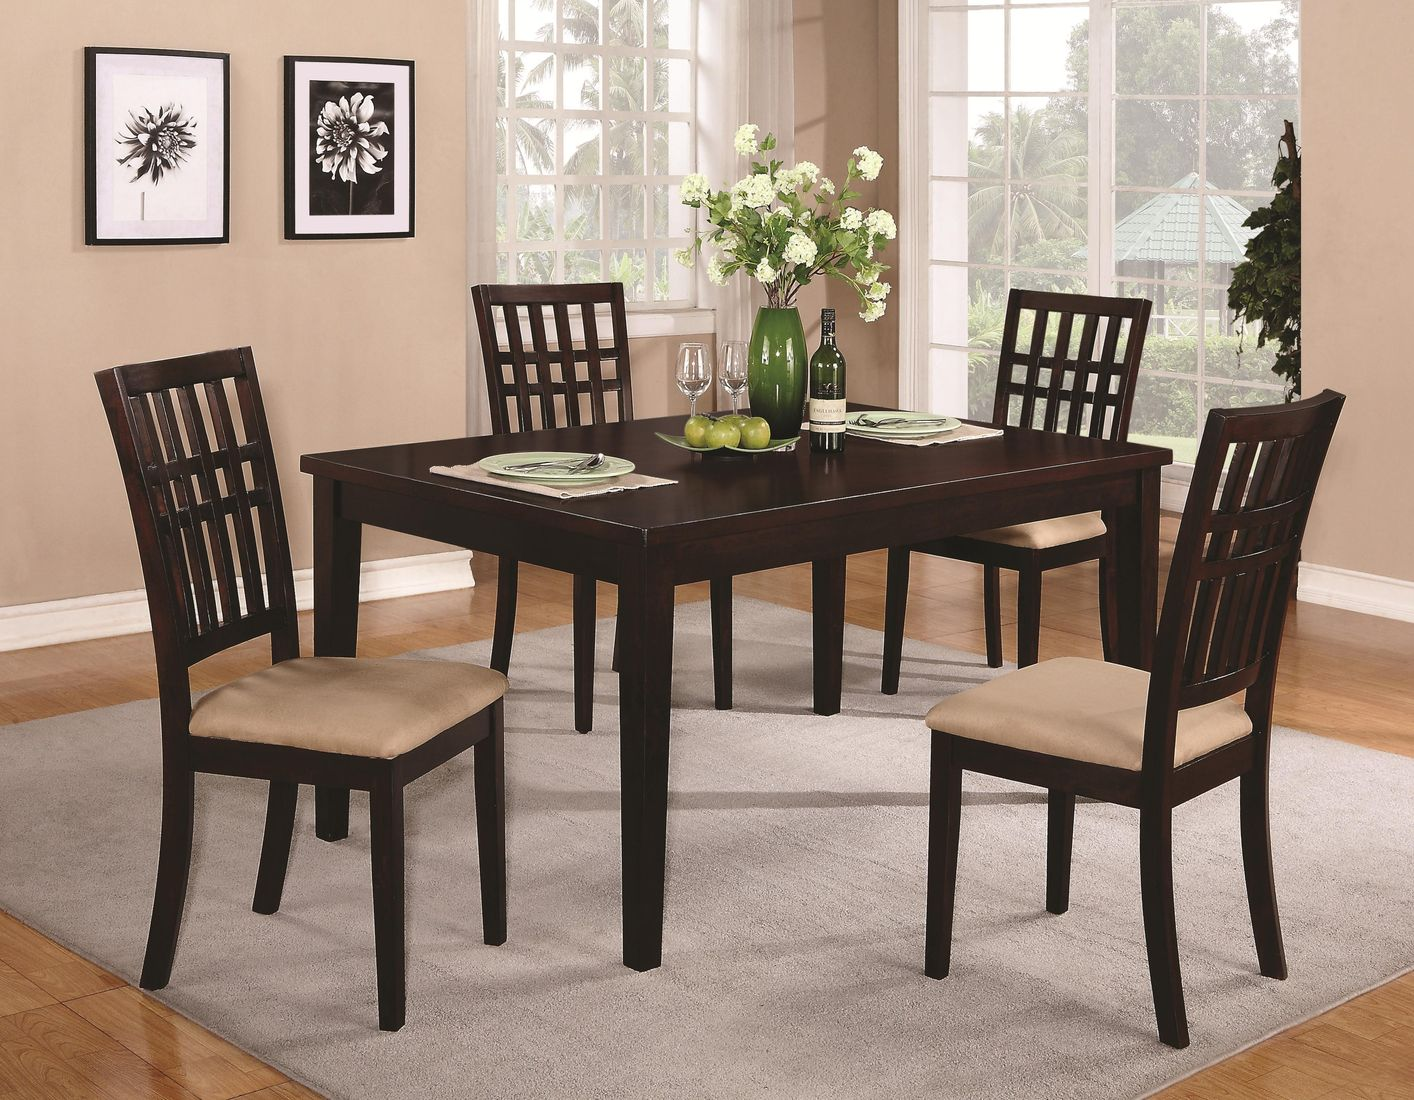 dark wood dining room furniture. brandt dark cherry wood dining table room furniture i & Dark Wood Dining Room Furniture. Brandt Dark Cherry Wood Dining ...